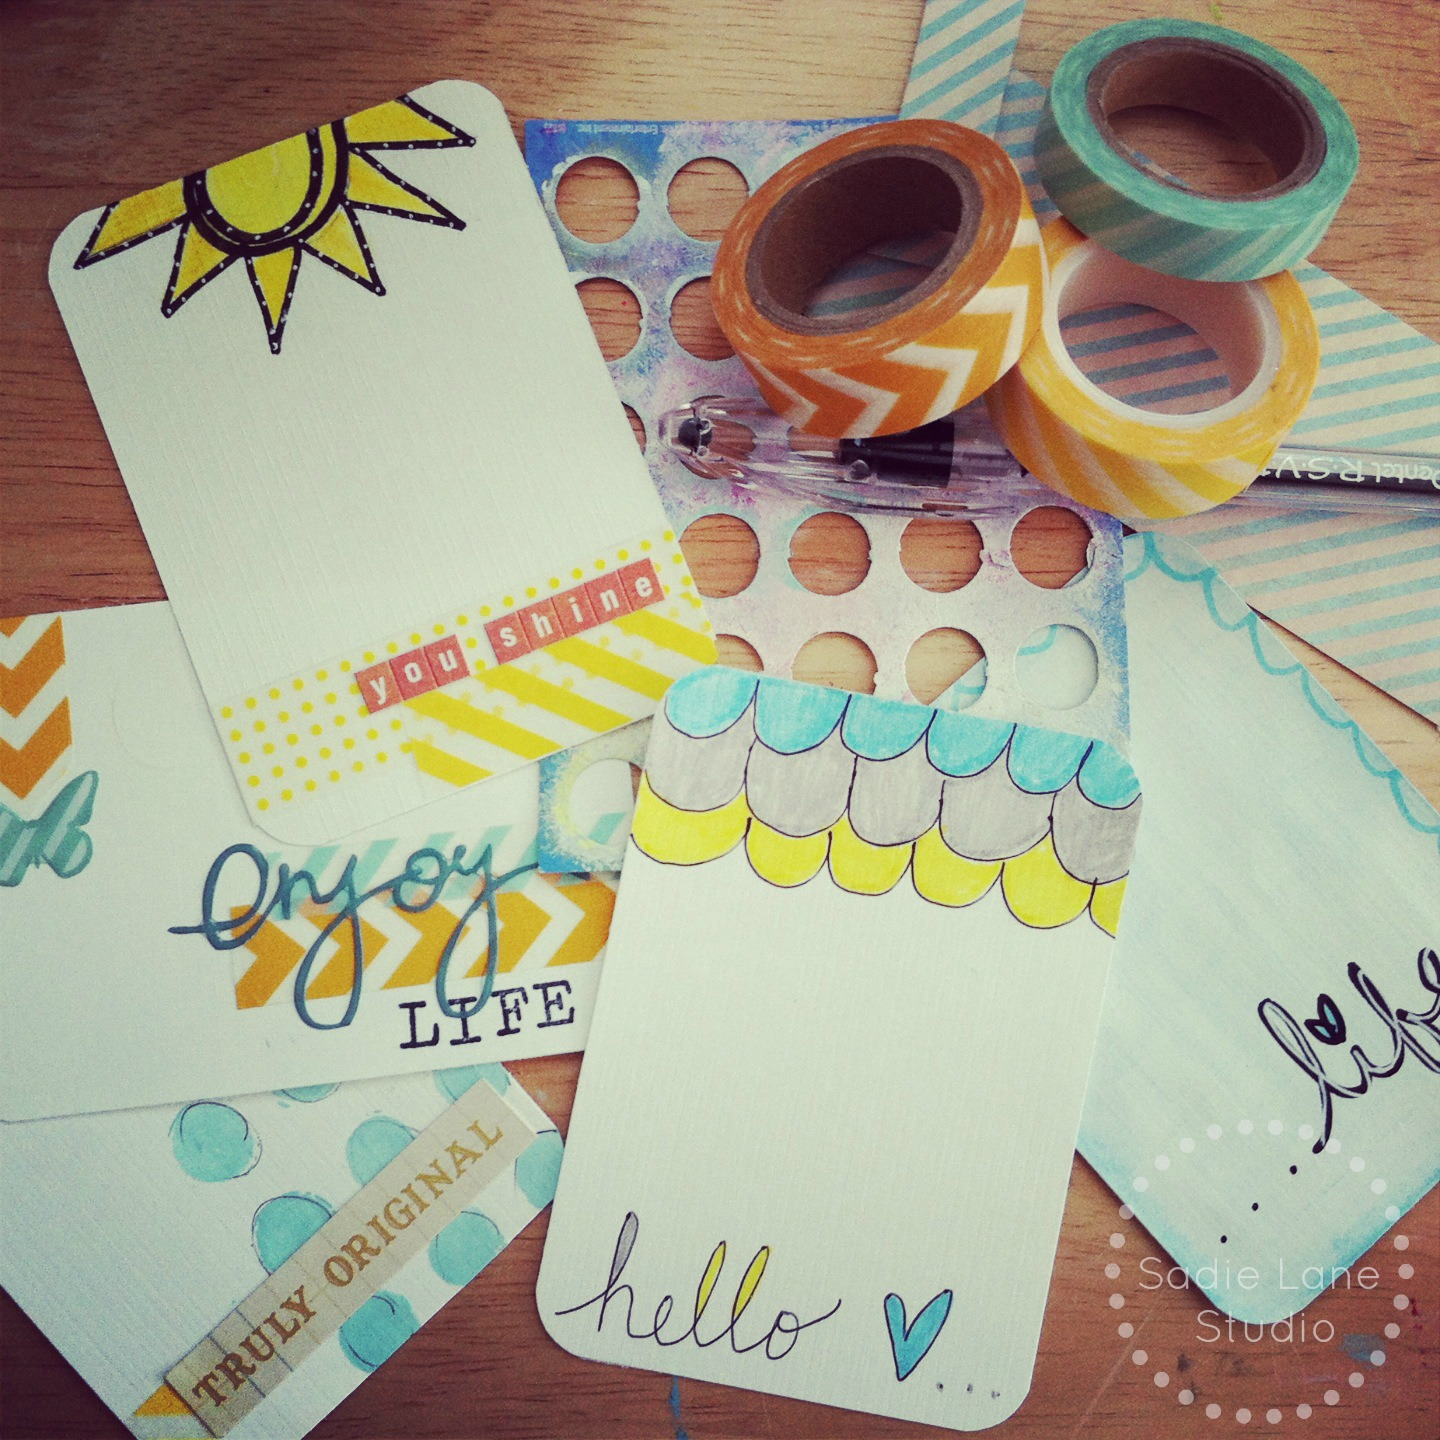 Scrapbook journaling ideas